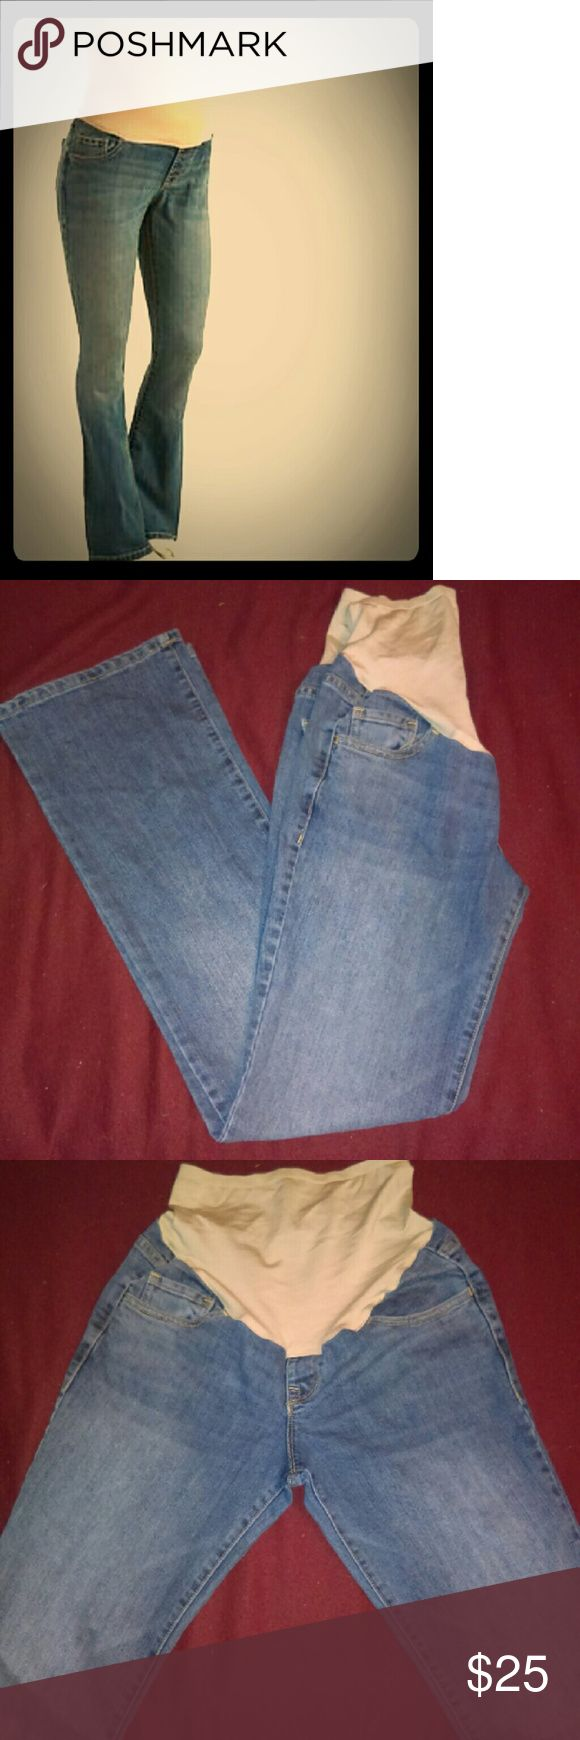 Old Navy Bootcut Full-Panel Maternity Jeans Size 4 Regular Length, nude nylon/spandex full-panel waist band, Maternity Jeans from Old Navy. Great condition! Old Navy Jeans Boot Cut